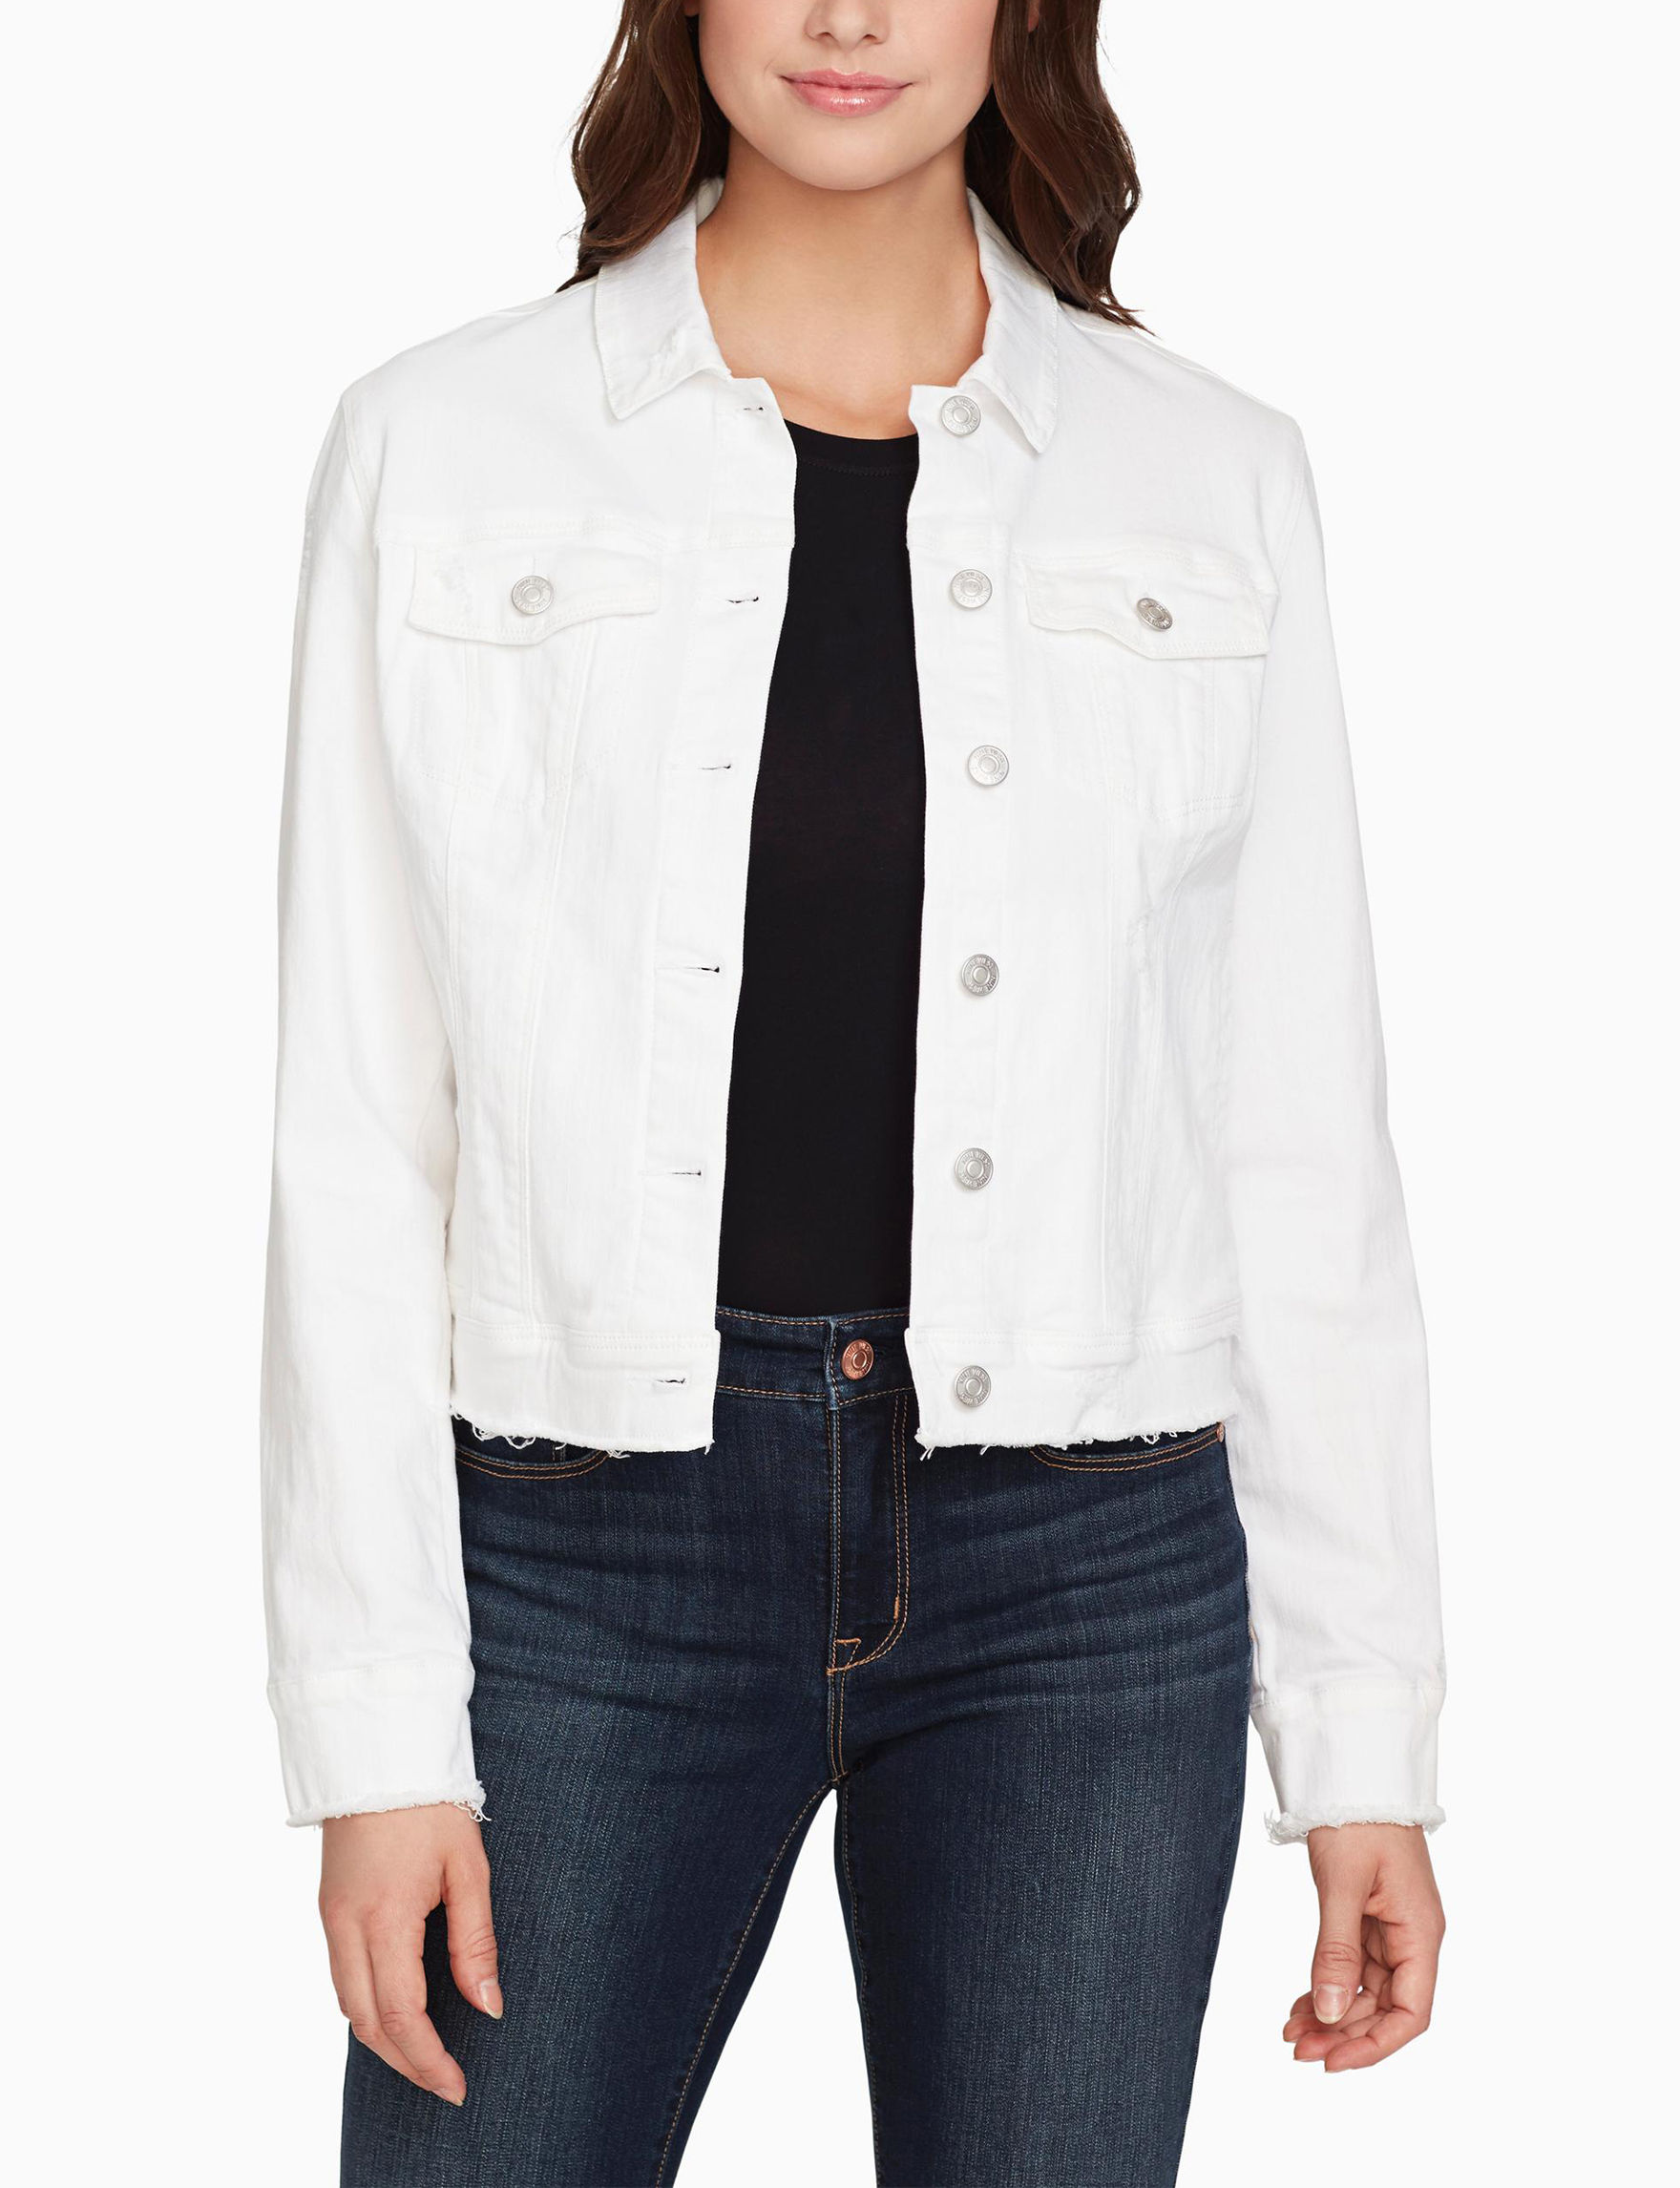 Nine West White Denim Jackets